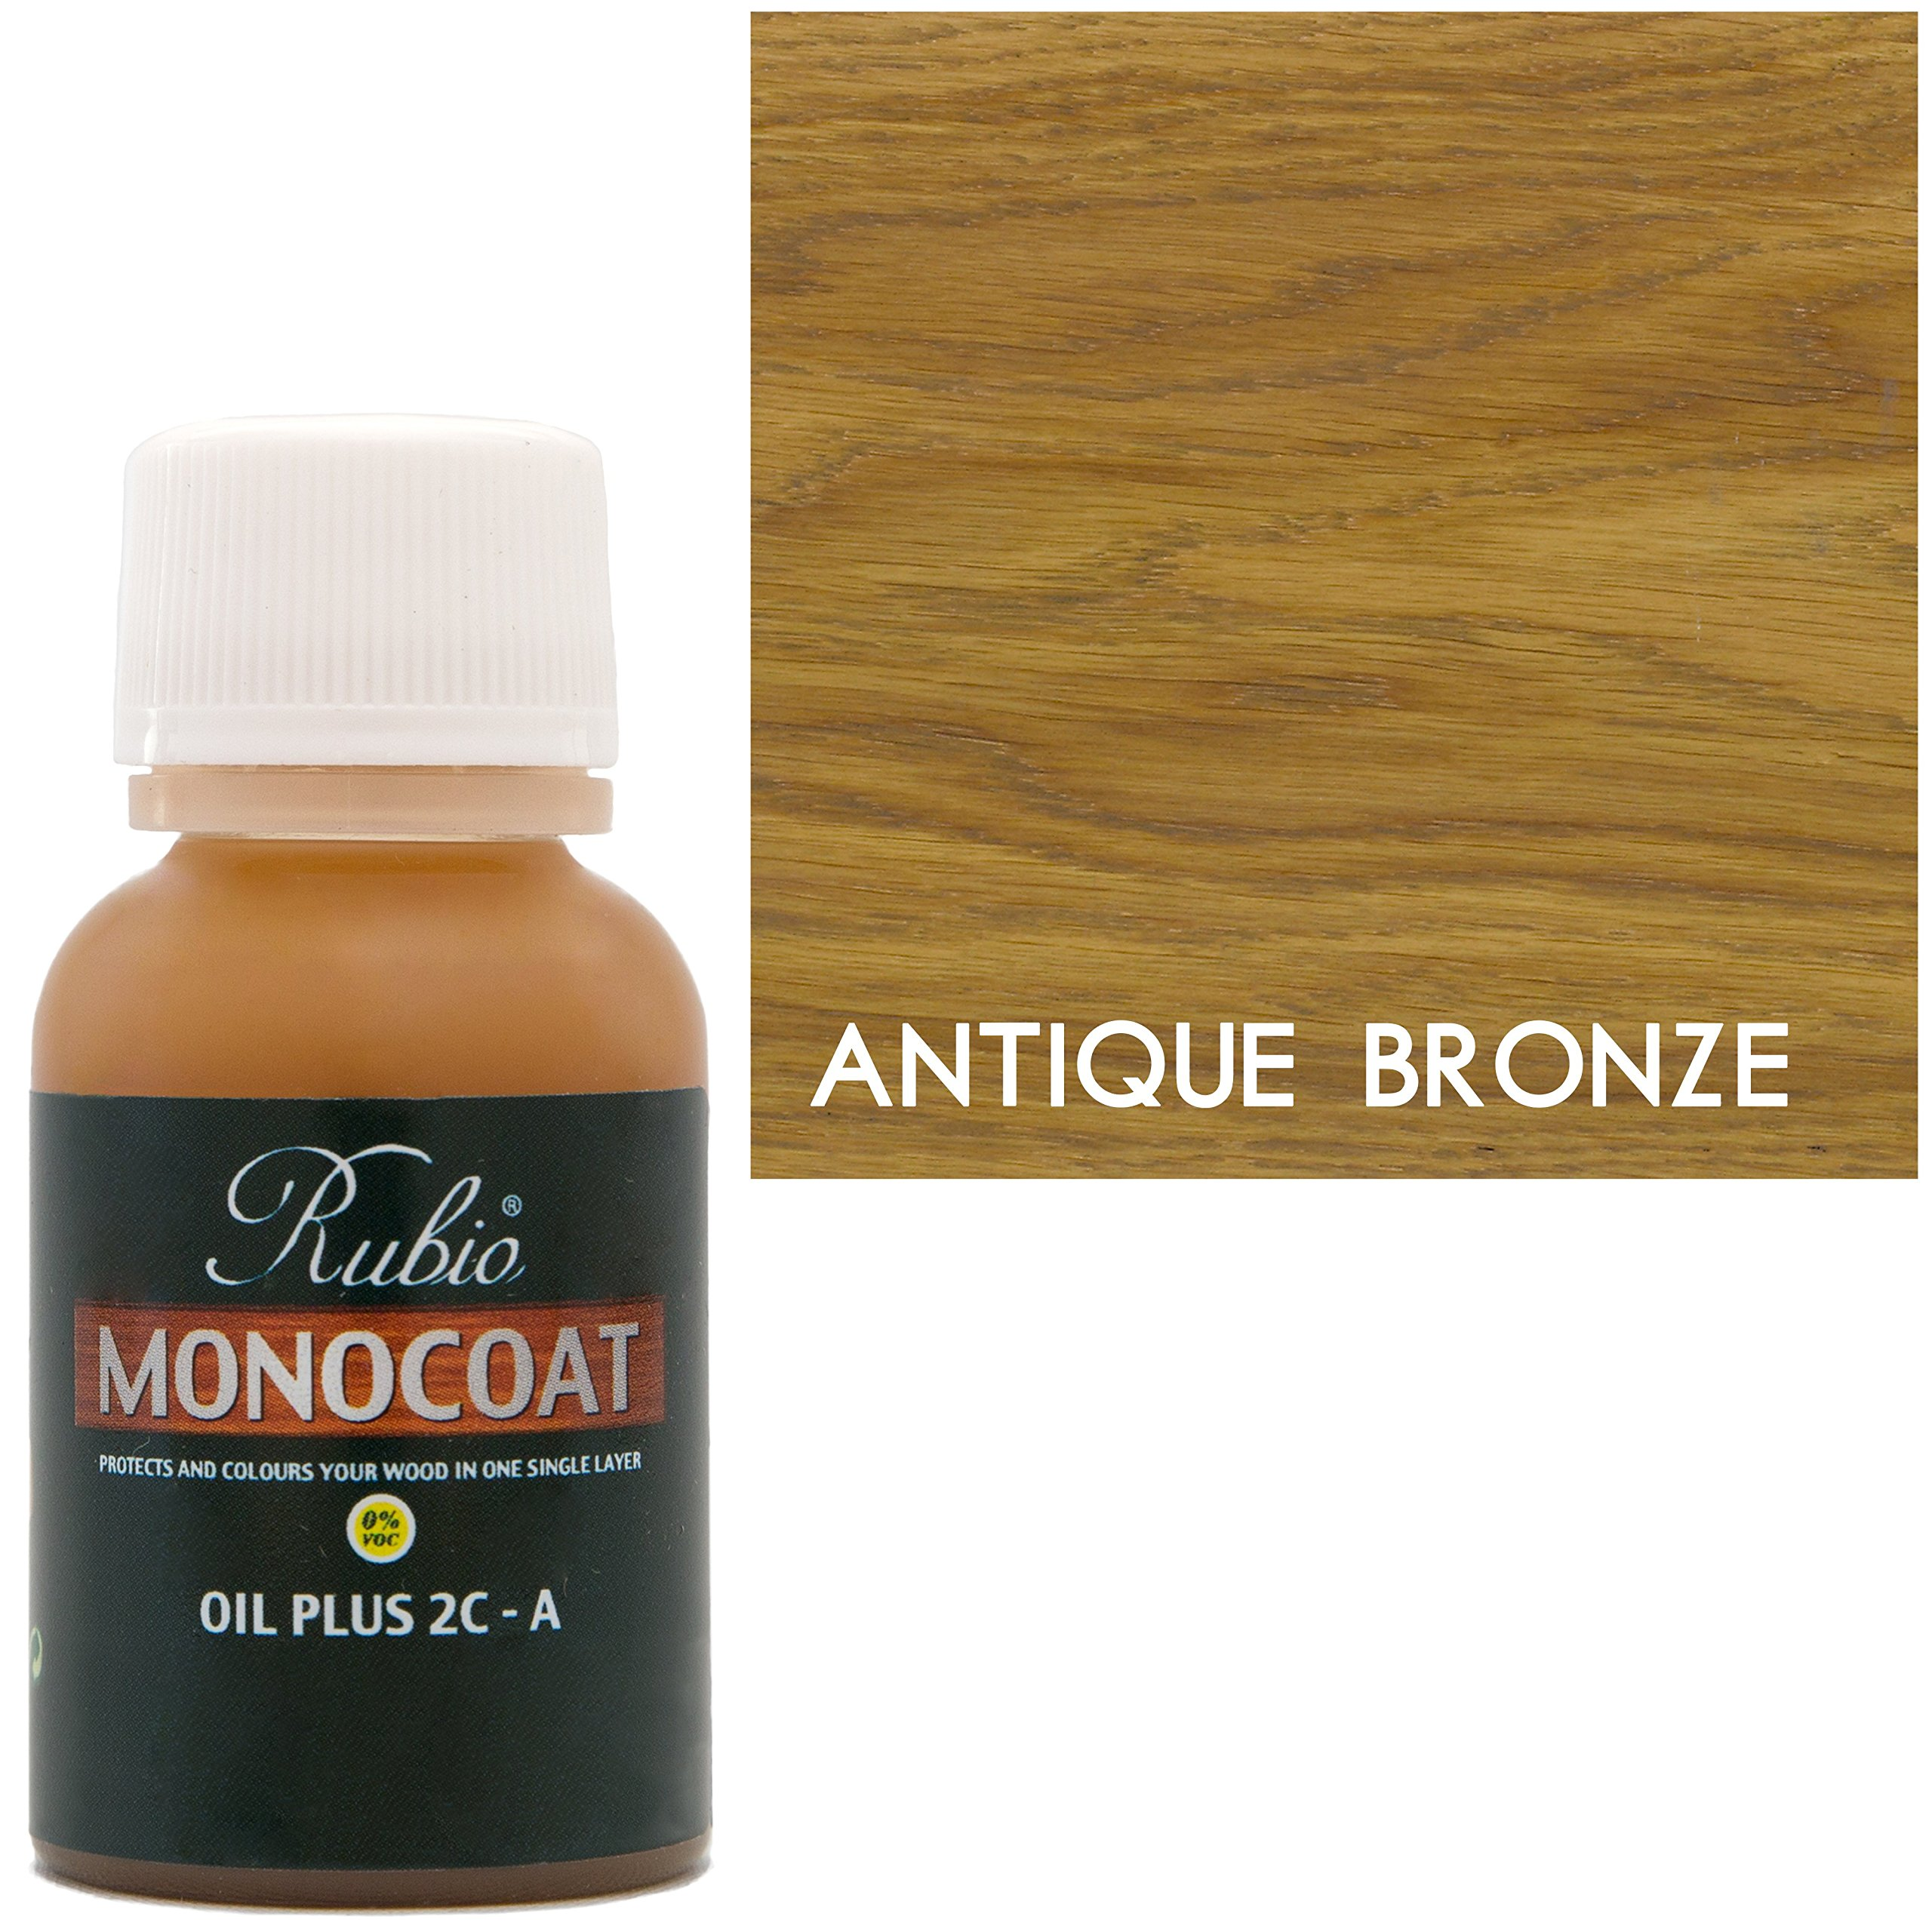 Rubio Monocoat Oil Plus 2C-A Sample Wood Stain Antique Bronze 20ml